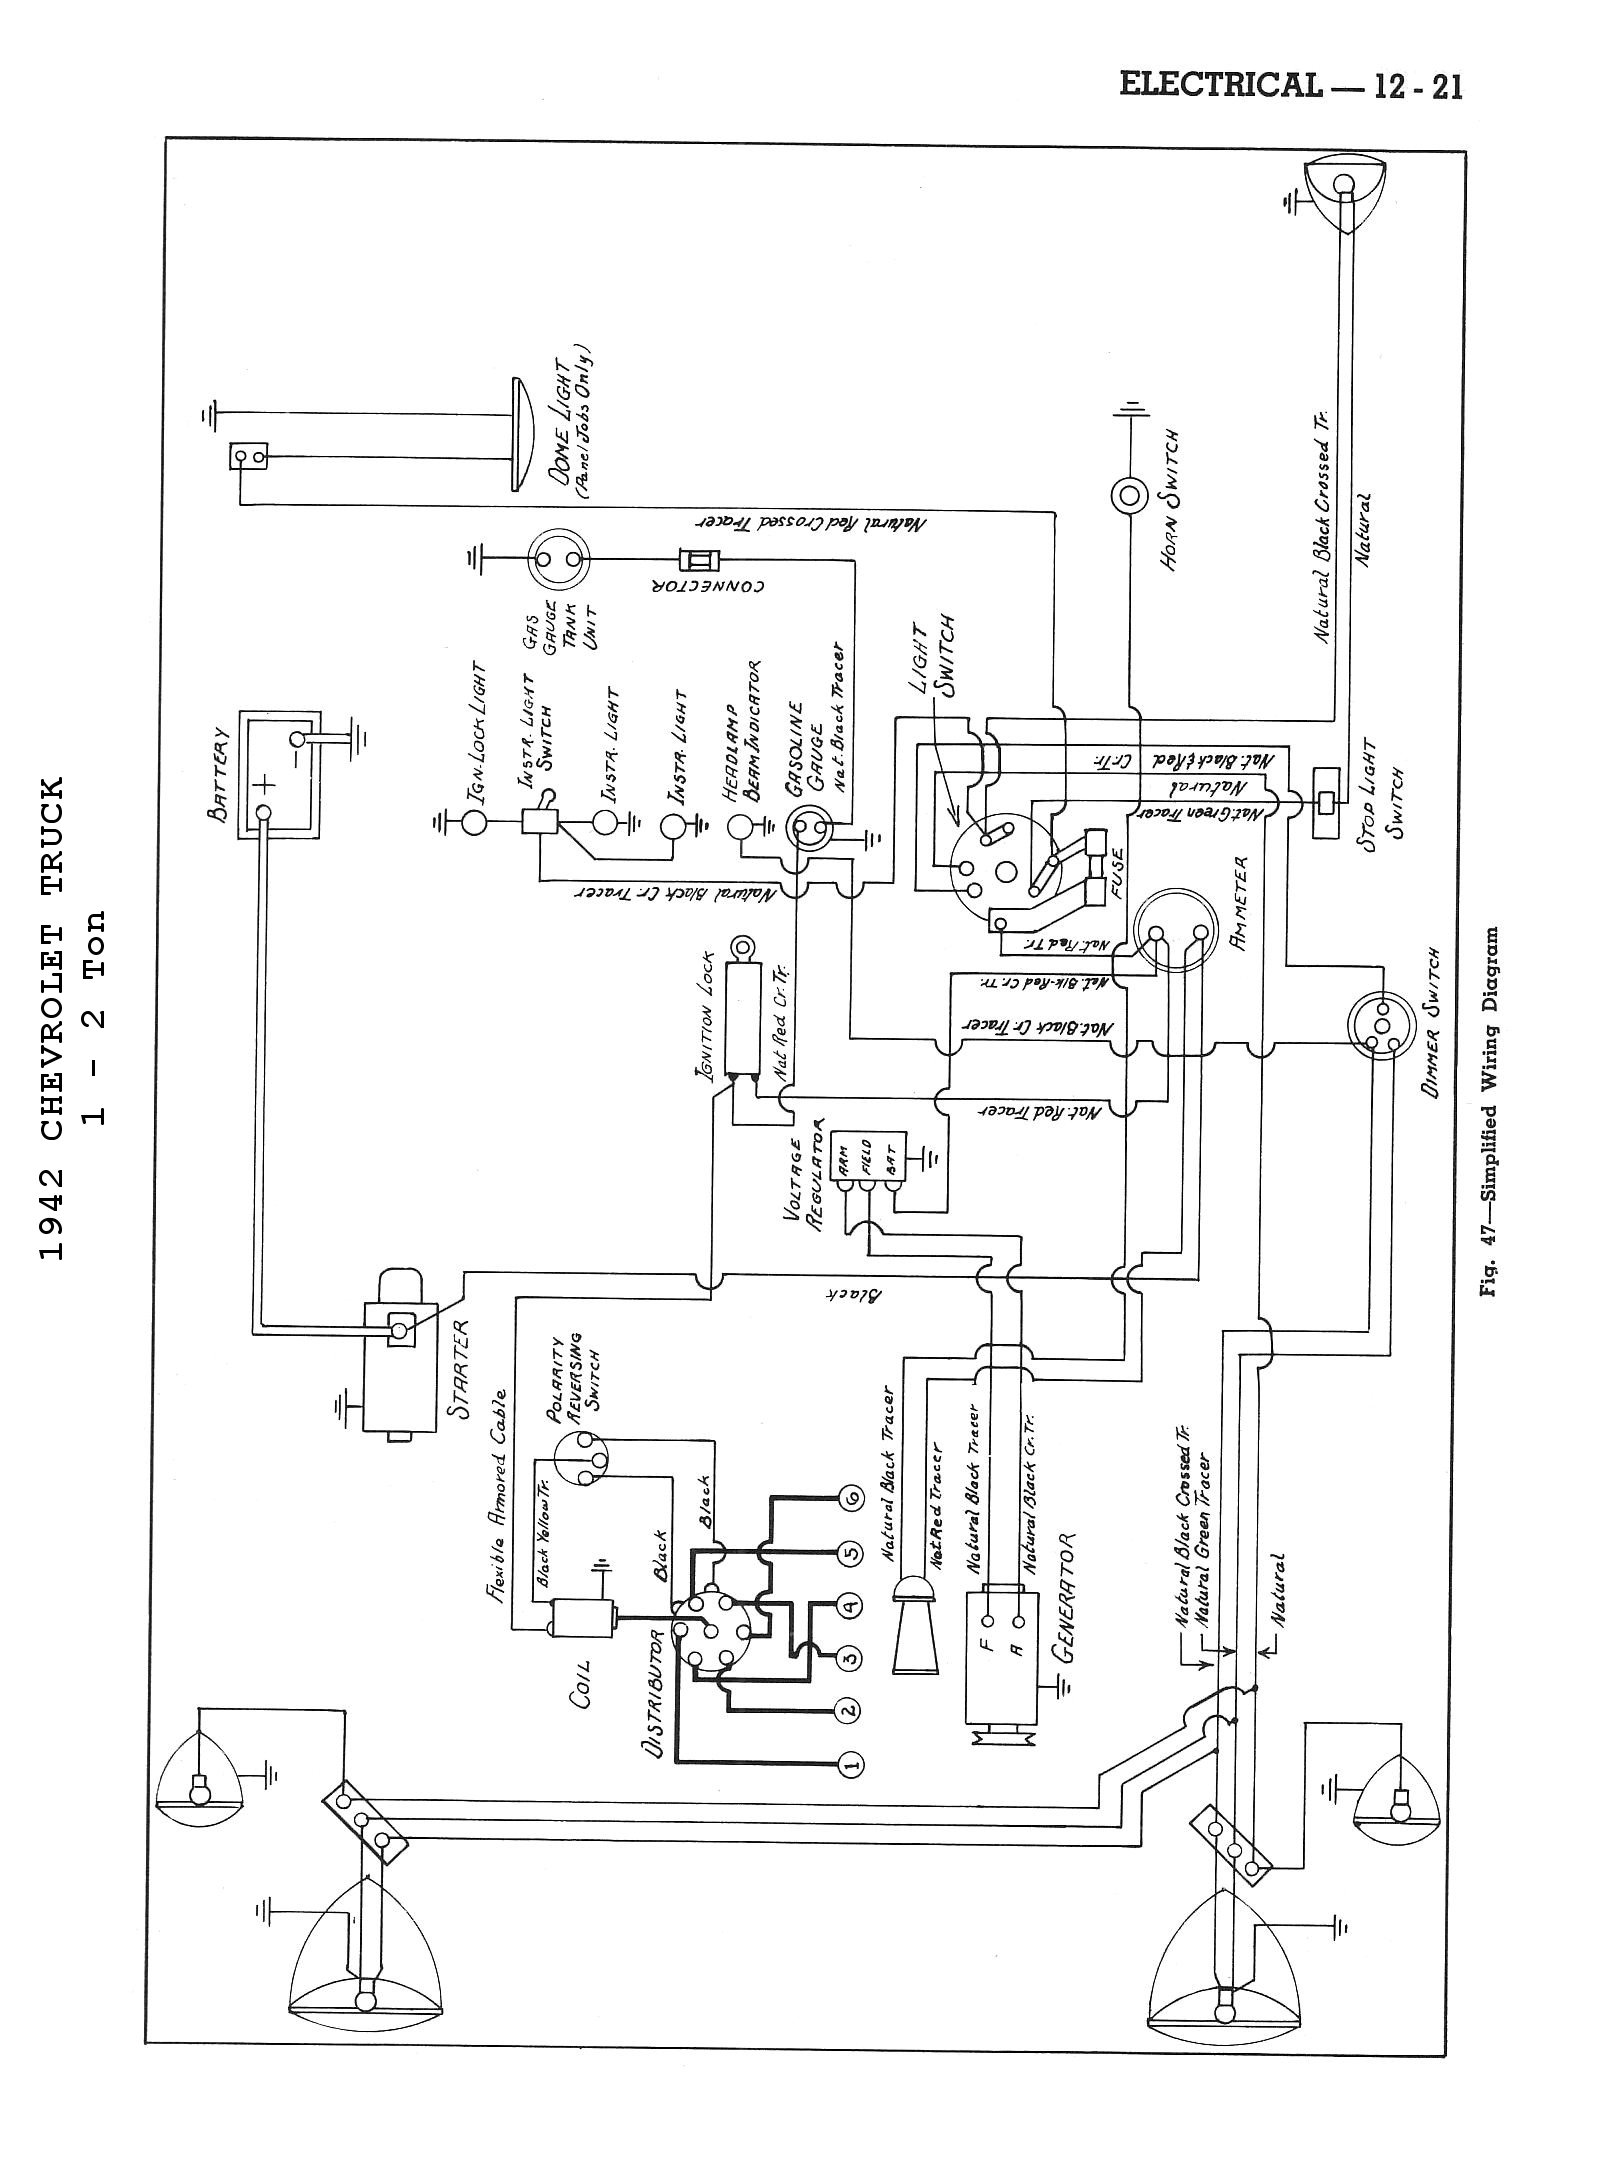 Chevy Wiring Diagrams Way Lighting Circuit Diagram For Two Lights Moreover Ford F100 1942 Body 4x2 Truck